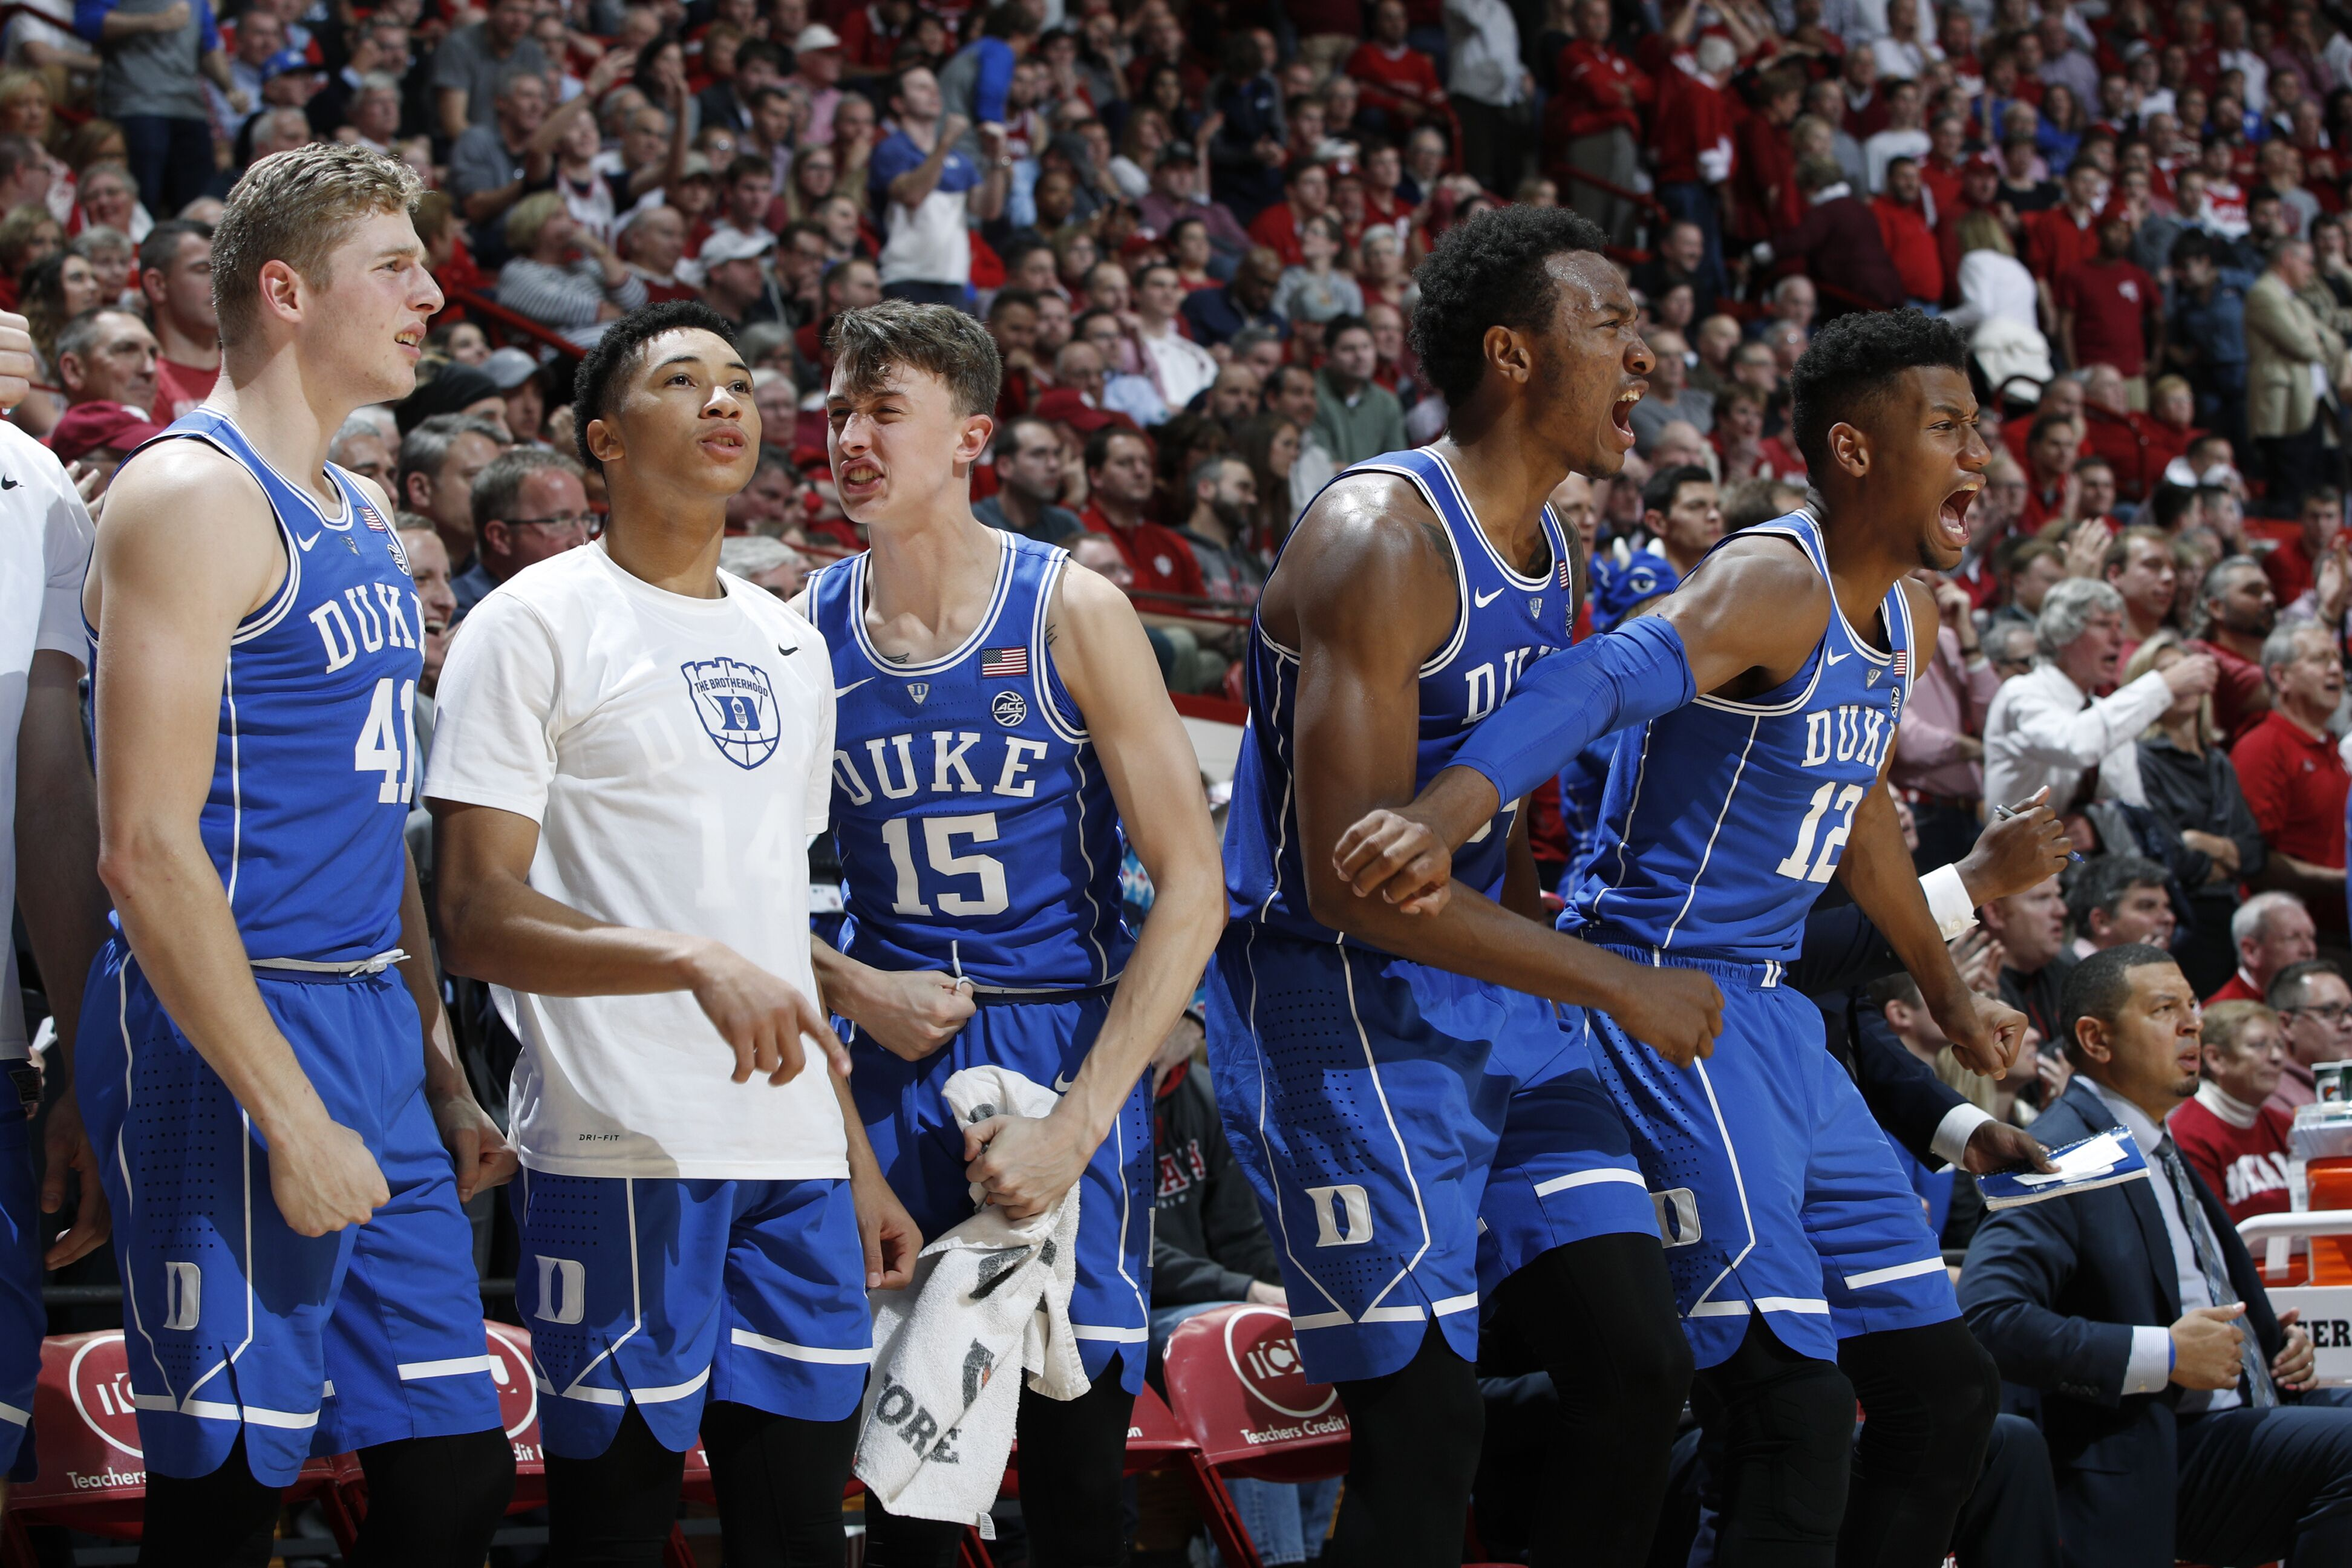 duke basketball: what the blue devils will look like in 2018-19